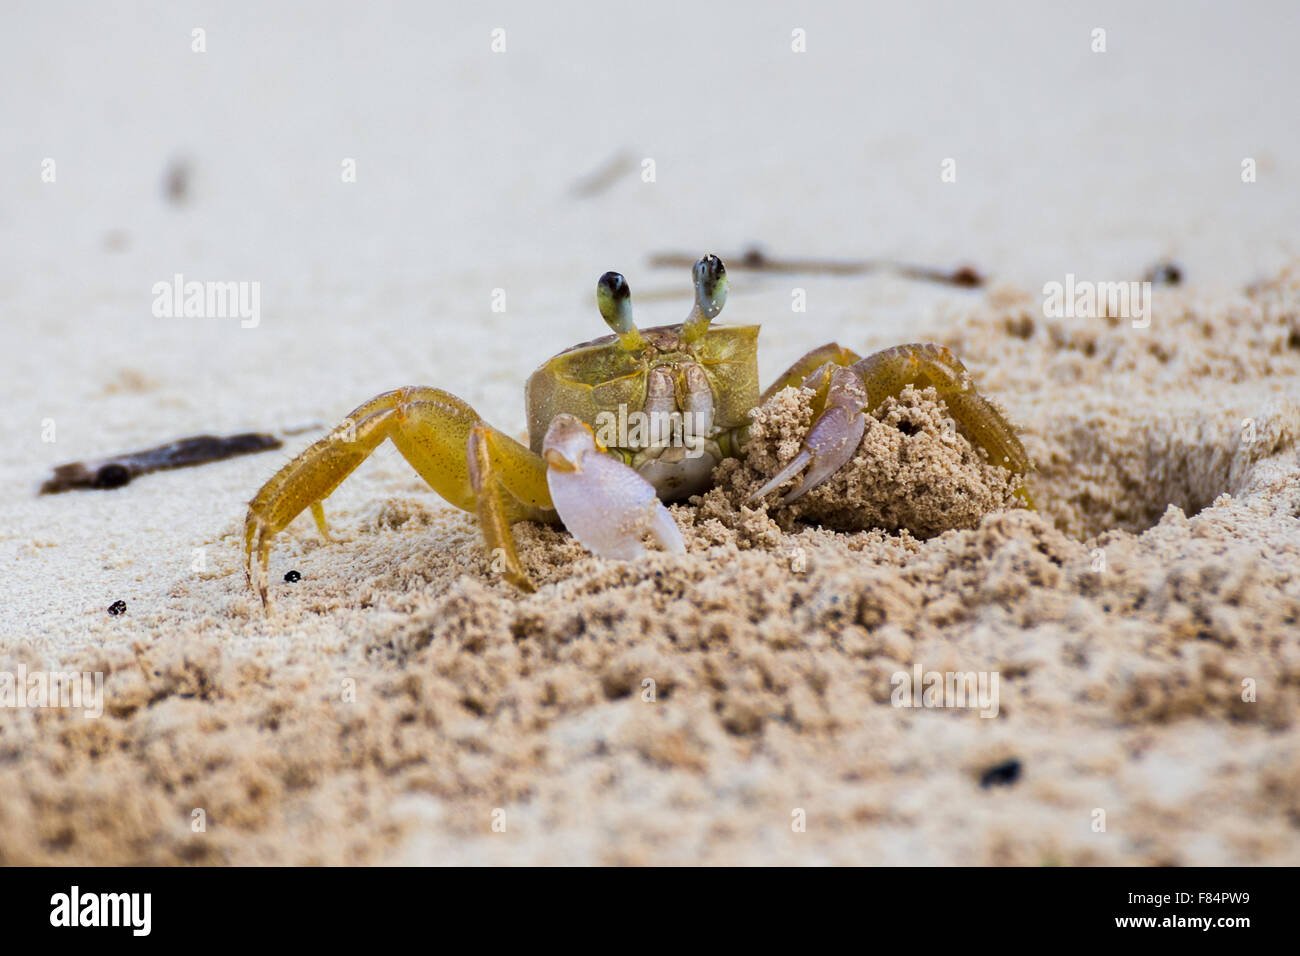 Sand crab showing it's claws - Stock Image